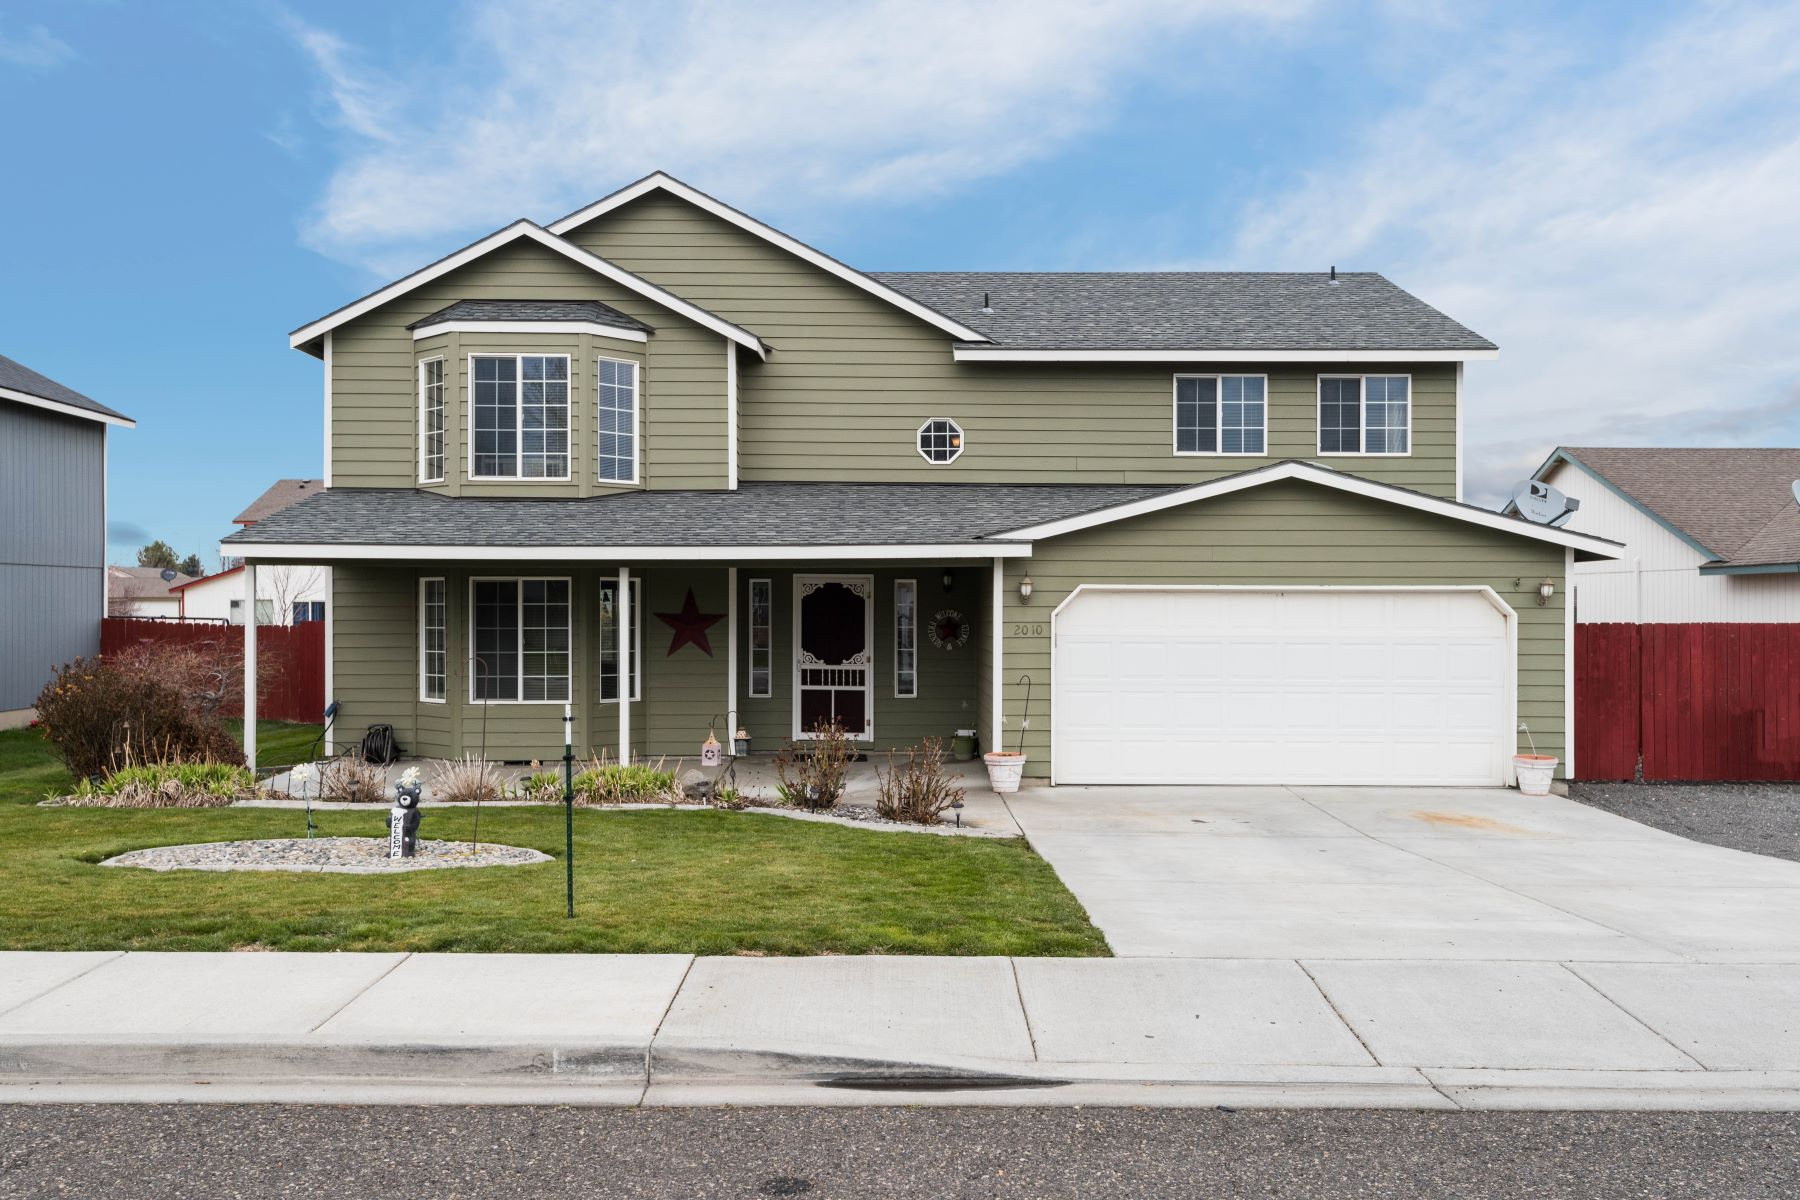 Single Family Home for Sale at Very Nice 4 Bed, 2 Story Home 2010 West 30th Place, Kennewick, Washington, 99337 United States